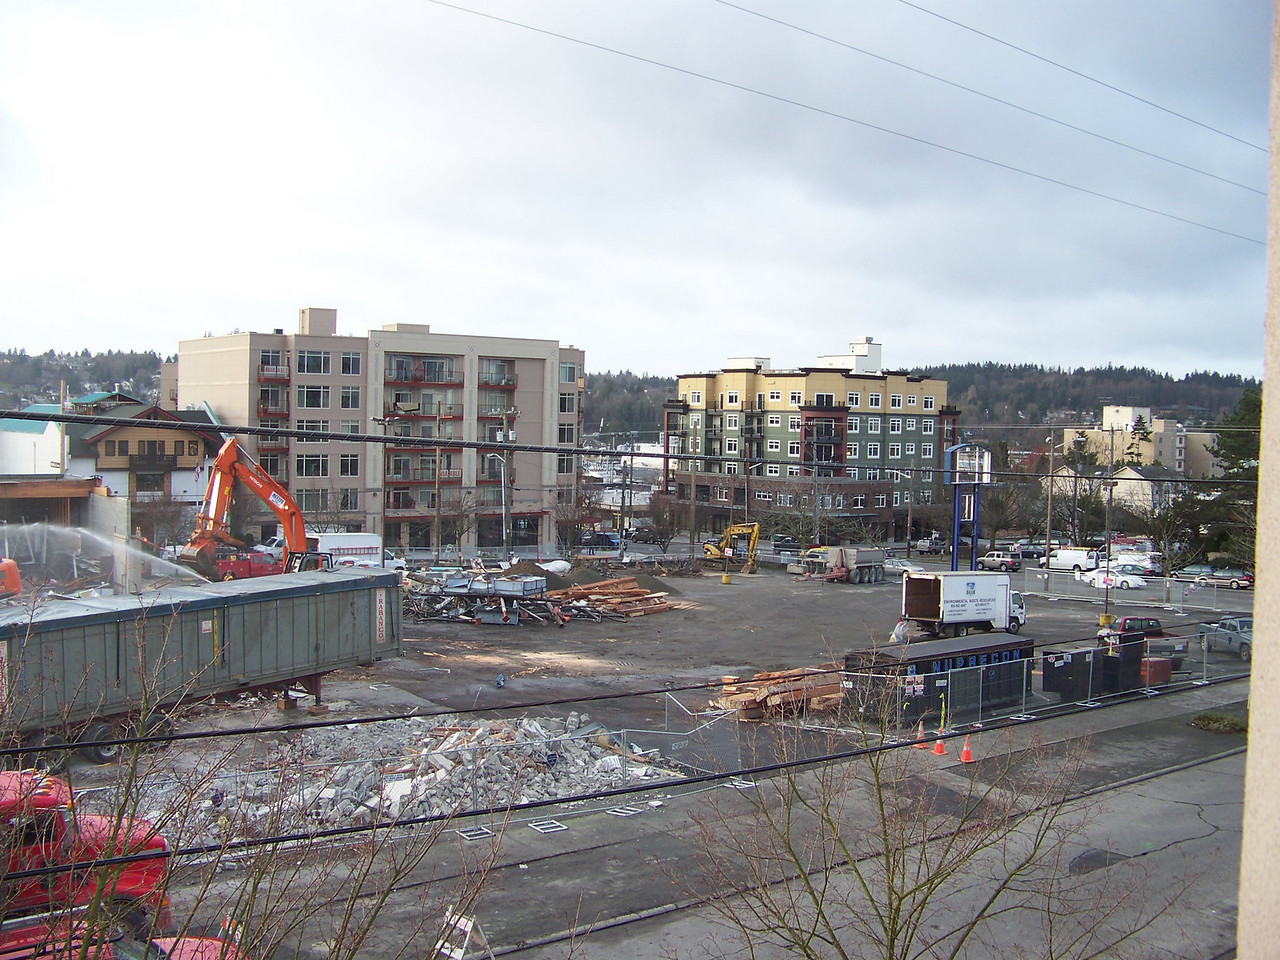 January 9, 2008.  The old Ballard QFC.  The parking lot was stil intact to the west of the demolished store.  On the edge of the parking lot near 24th Ave NW, the blue structure that held the store's sign is still standing.